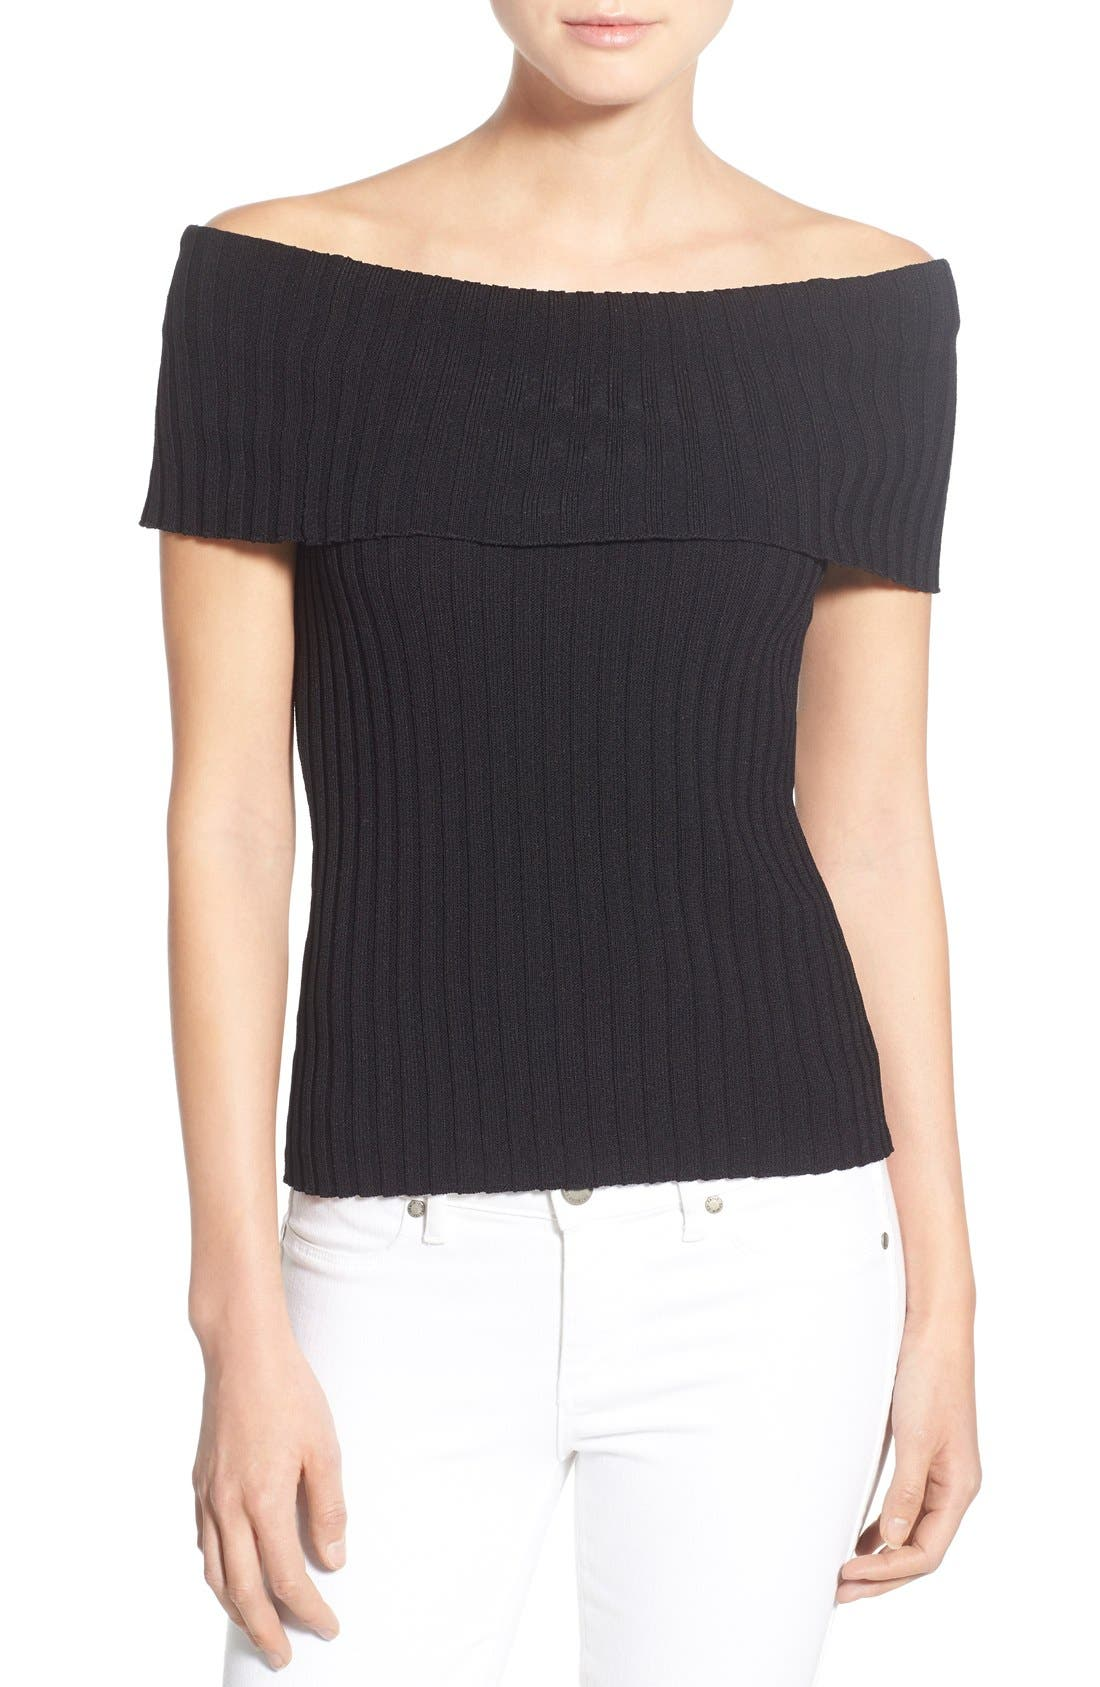 Main Image - Olivia Palermo + Chelsea28 Rib Knit Off the Shoulder Sweater